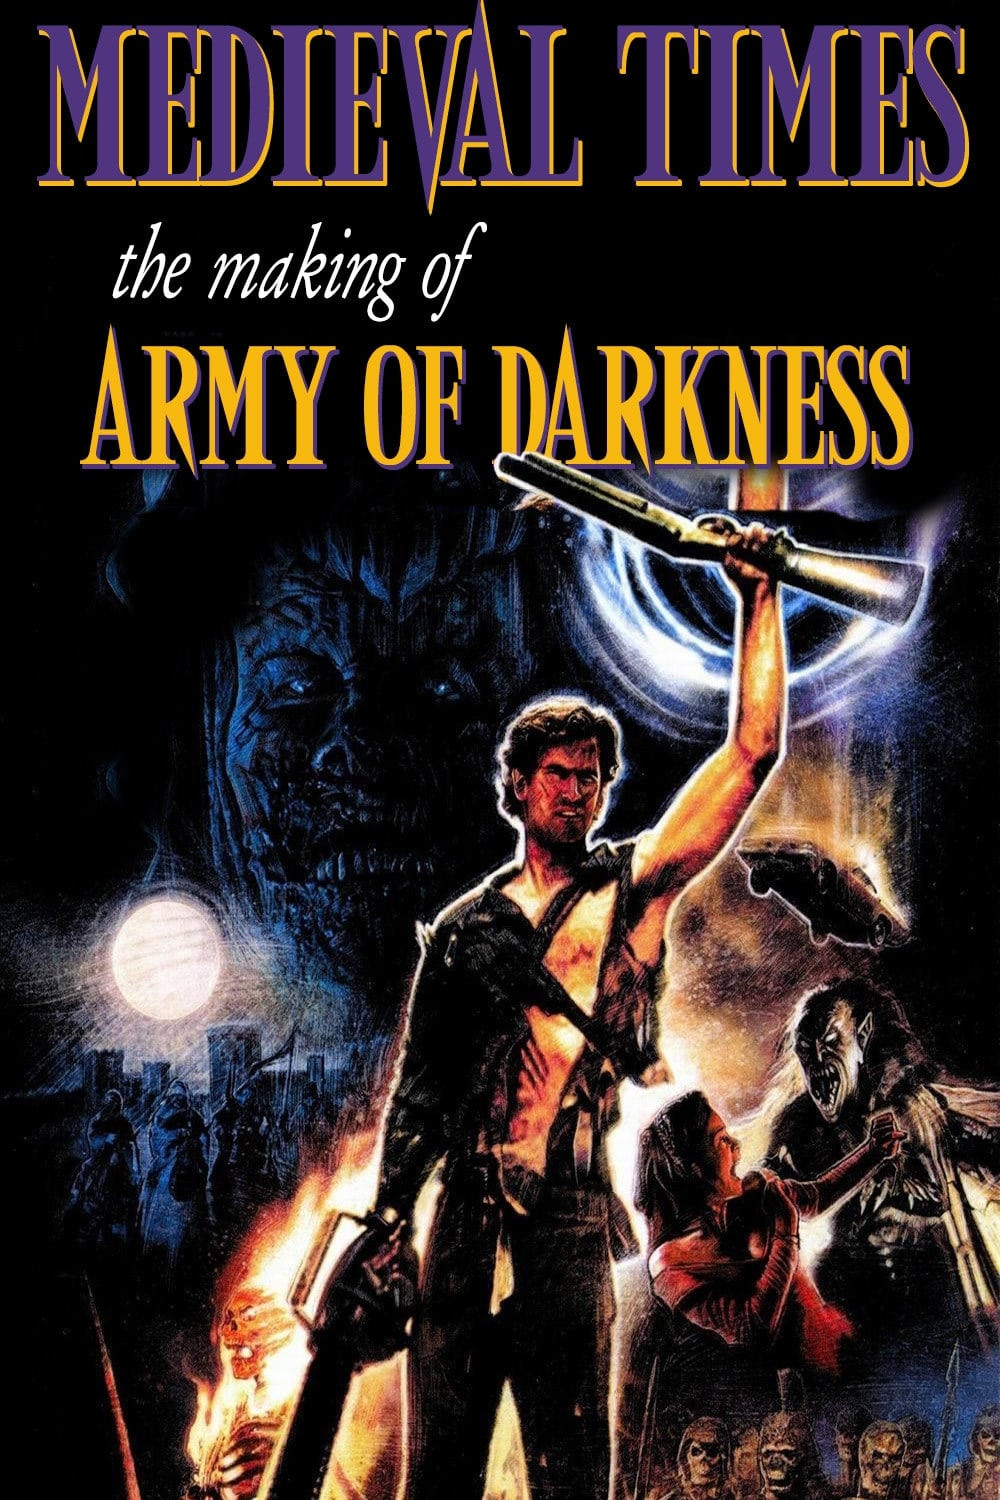 The Makings Of A Modern Bedroom: Medieval Times: The Making Of Army Of Darkness (2015